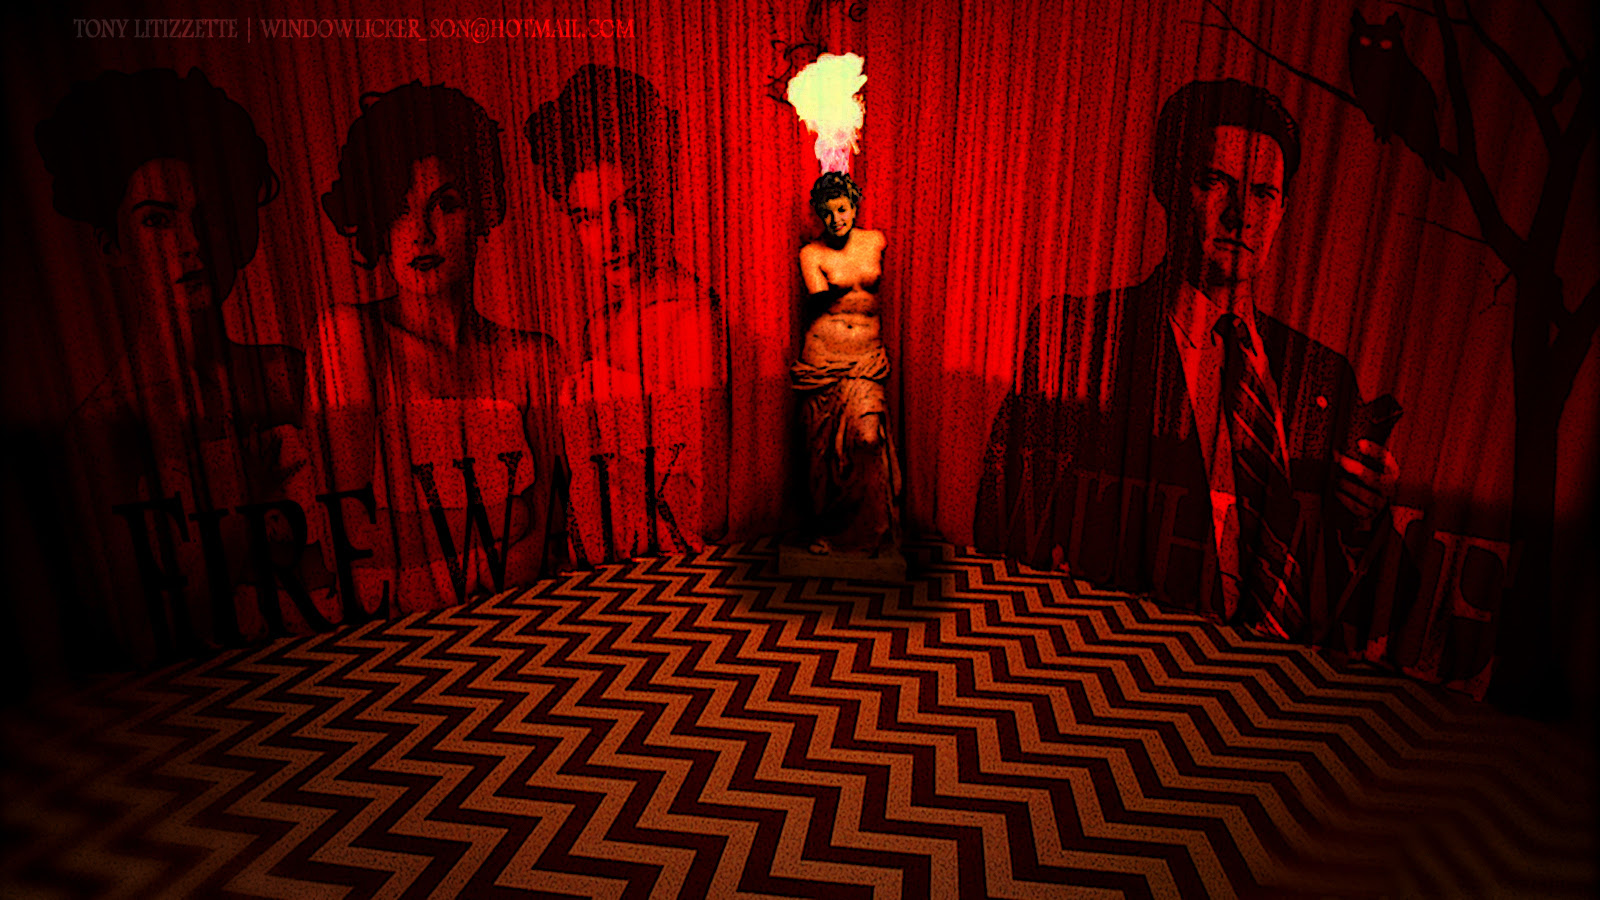 Twin Peaks Images The Black Lodge Hd Wallpaper And Background Photos